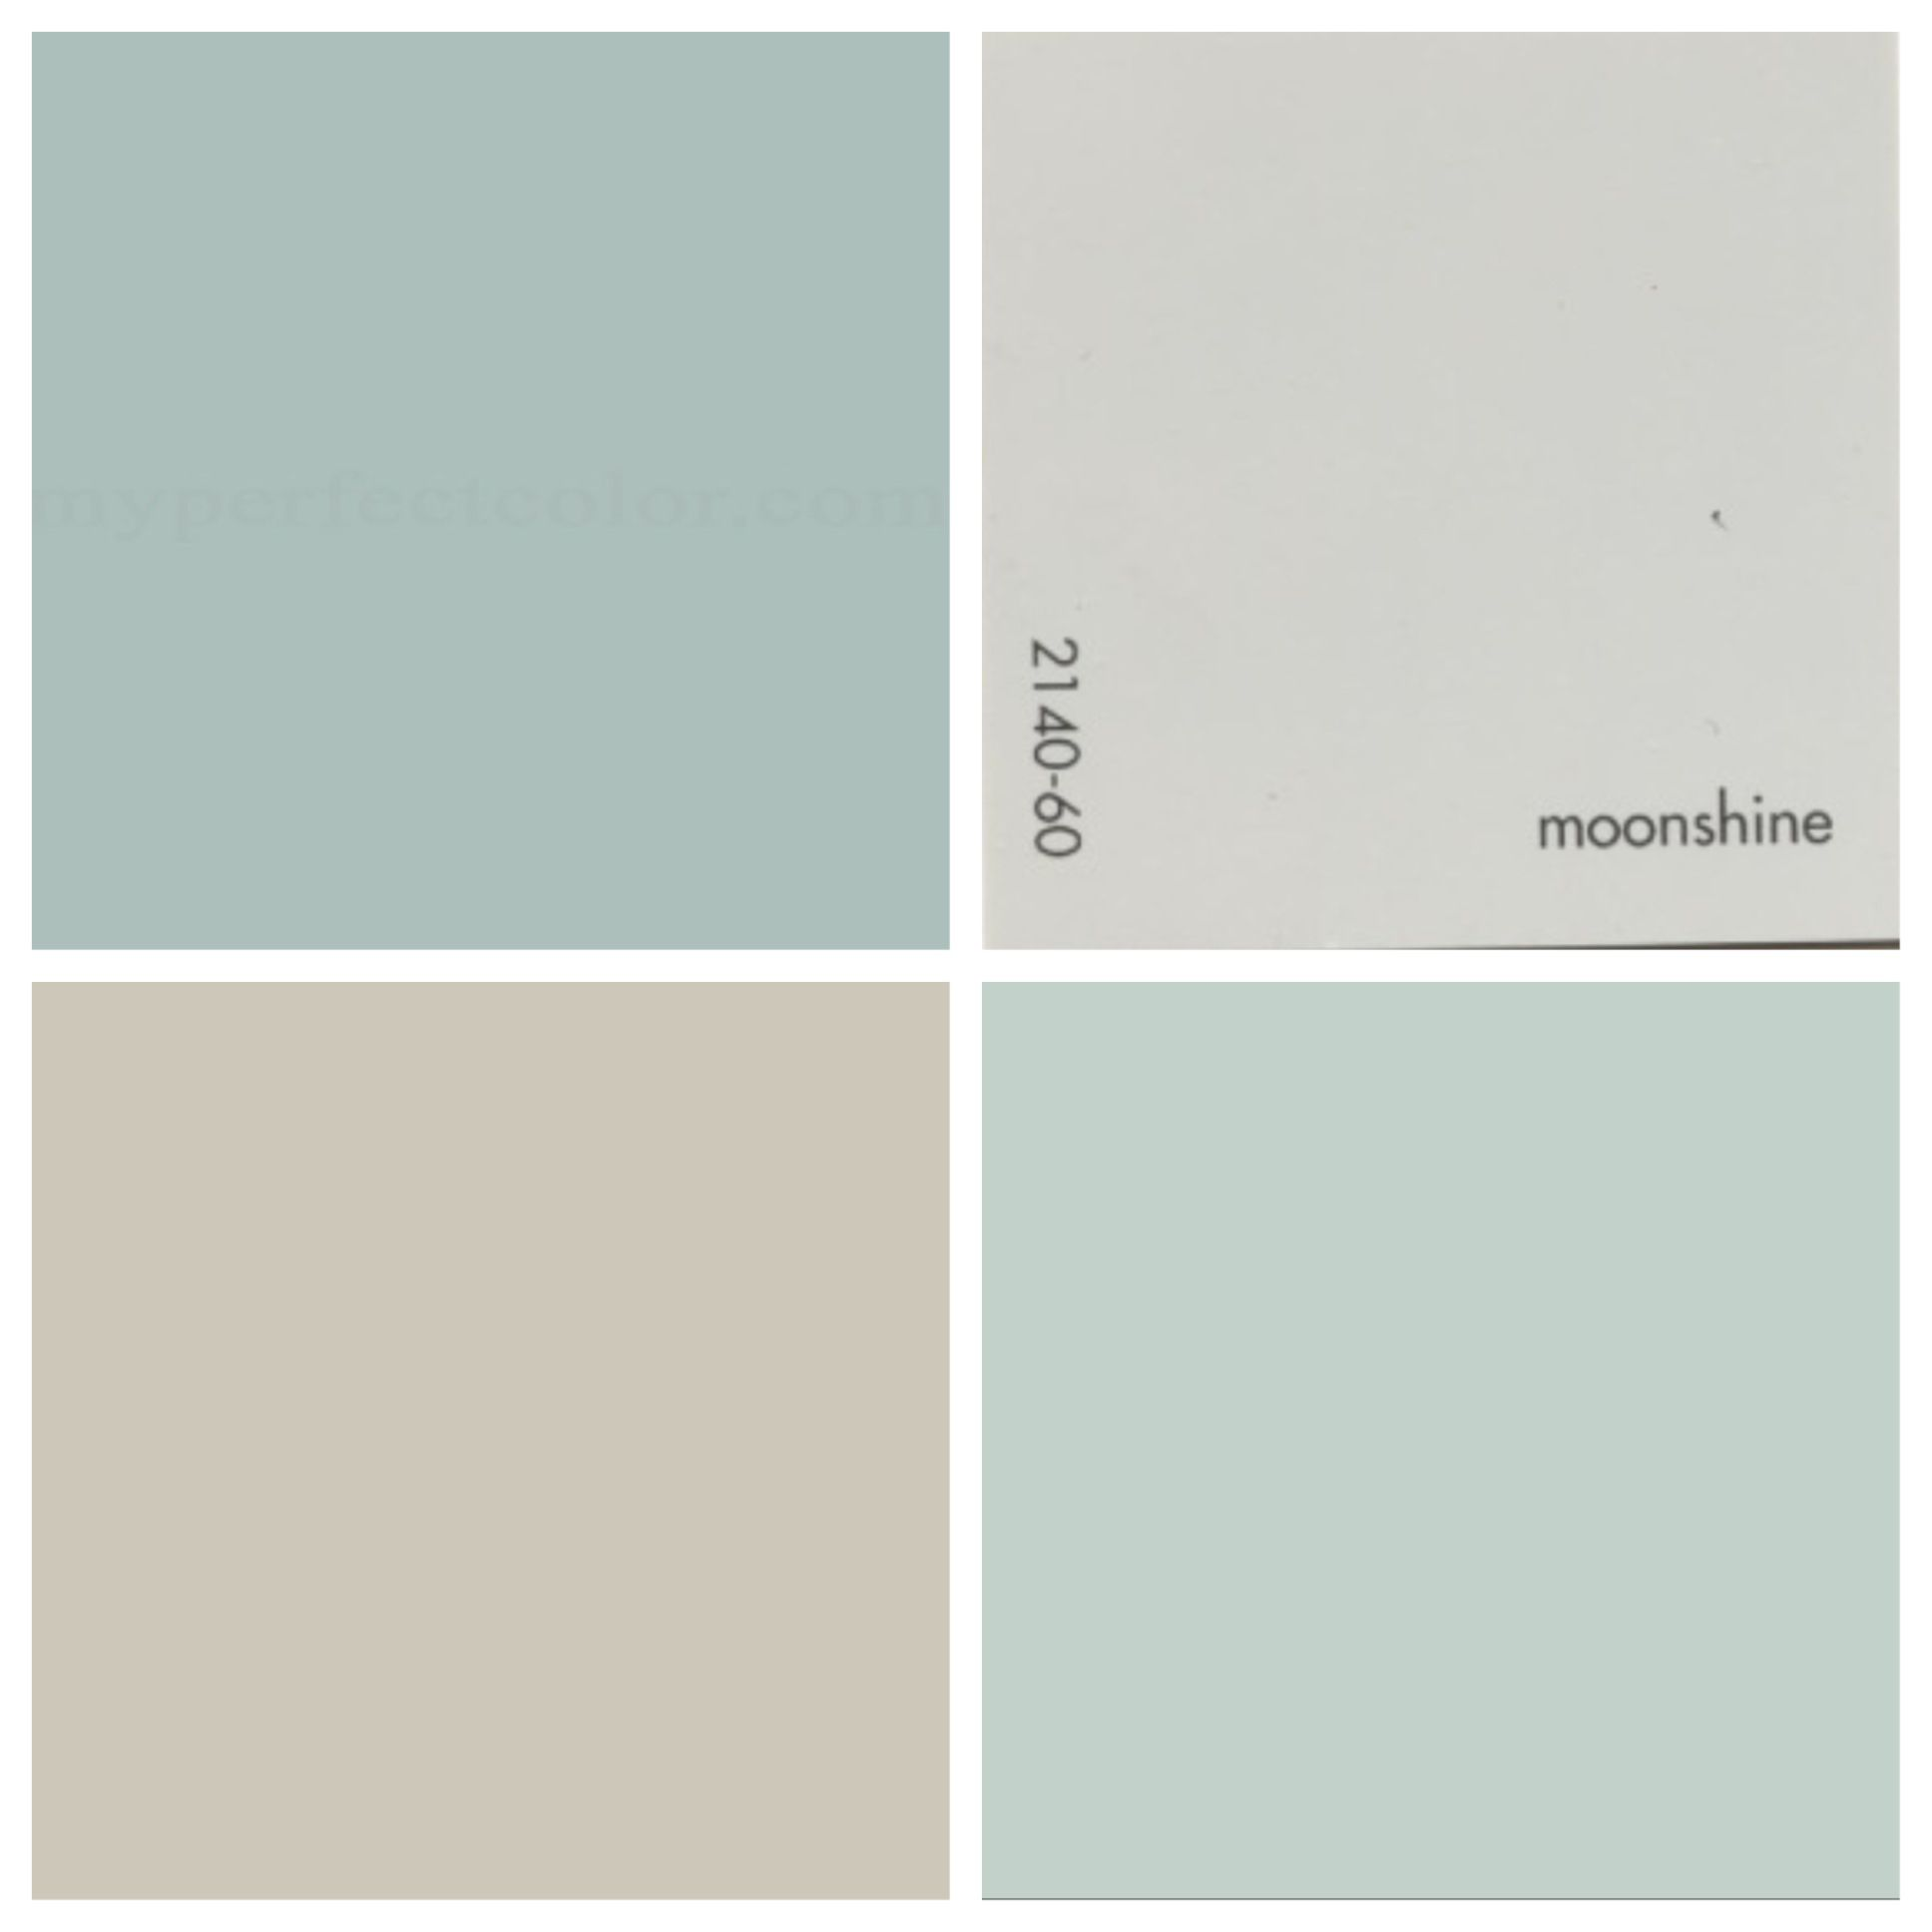 House Colors Top Left Wedgewood Gray Top Right Moonshine Bottom